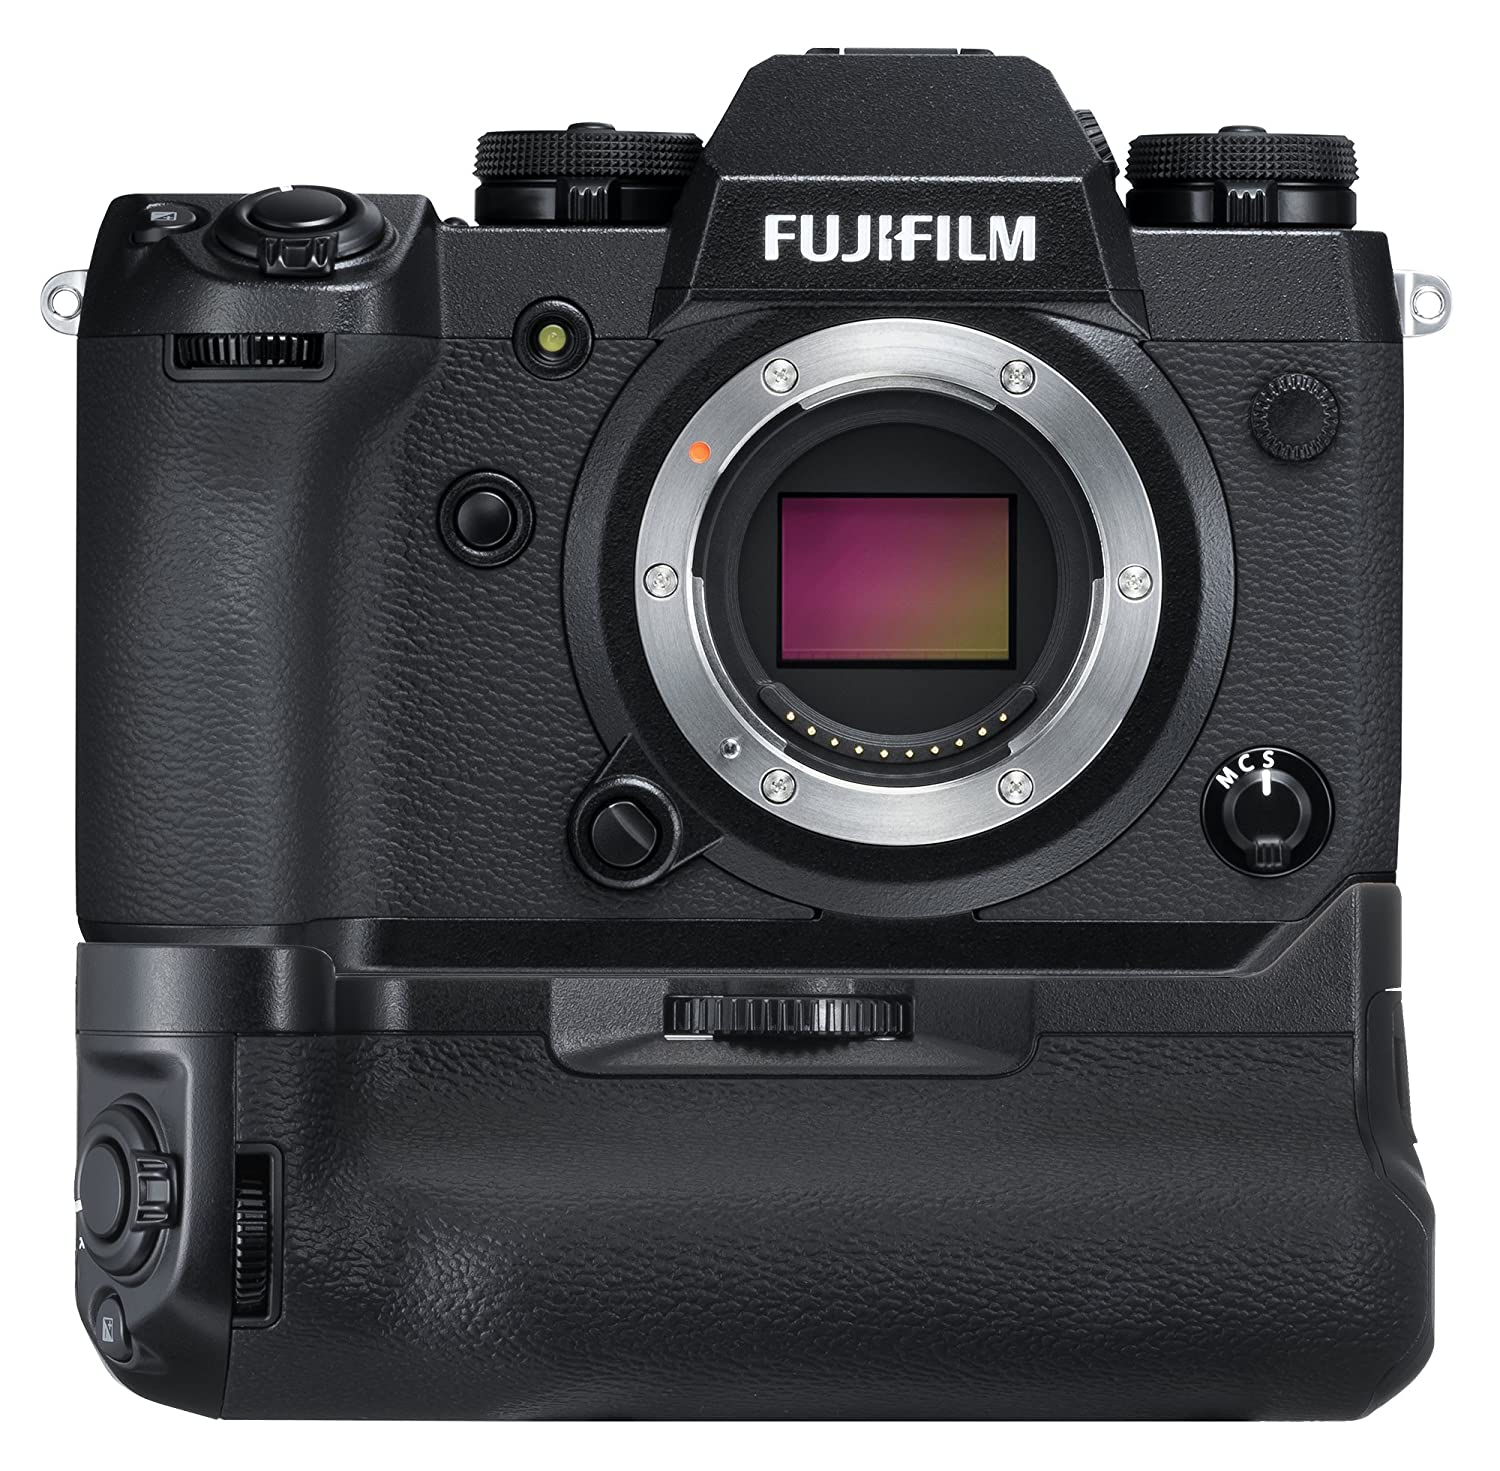 Fujifilm X-H1 Mirrorless Digital Camera